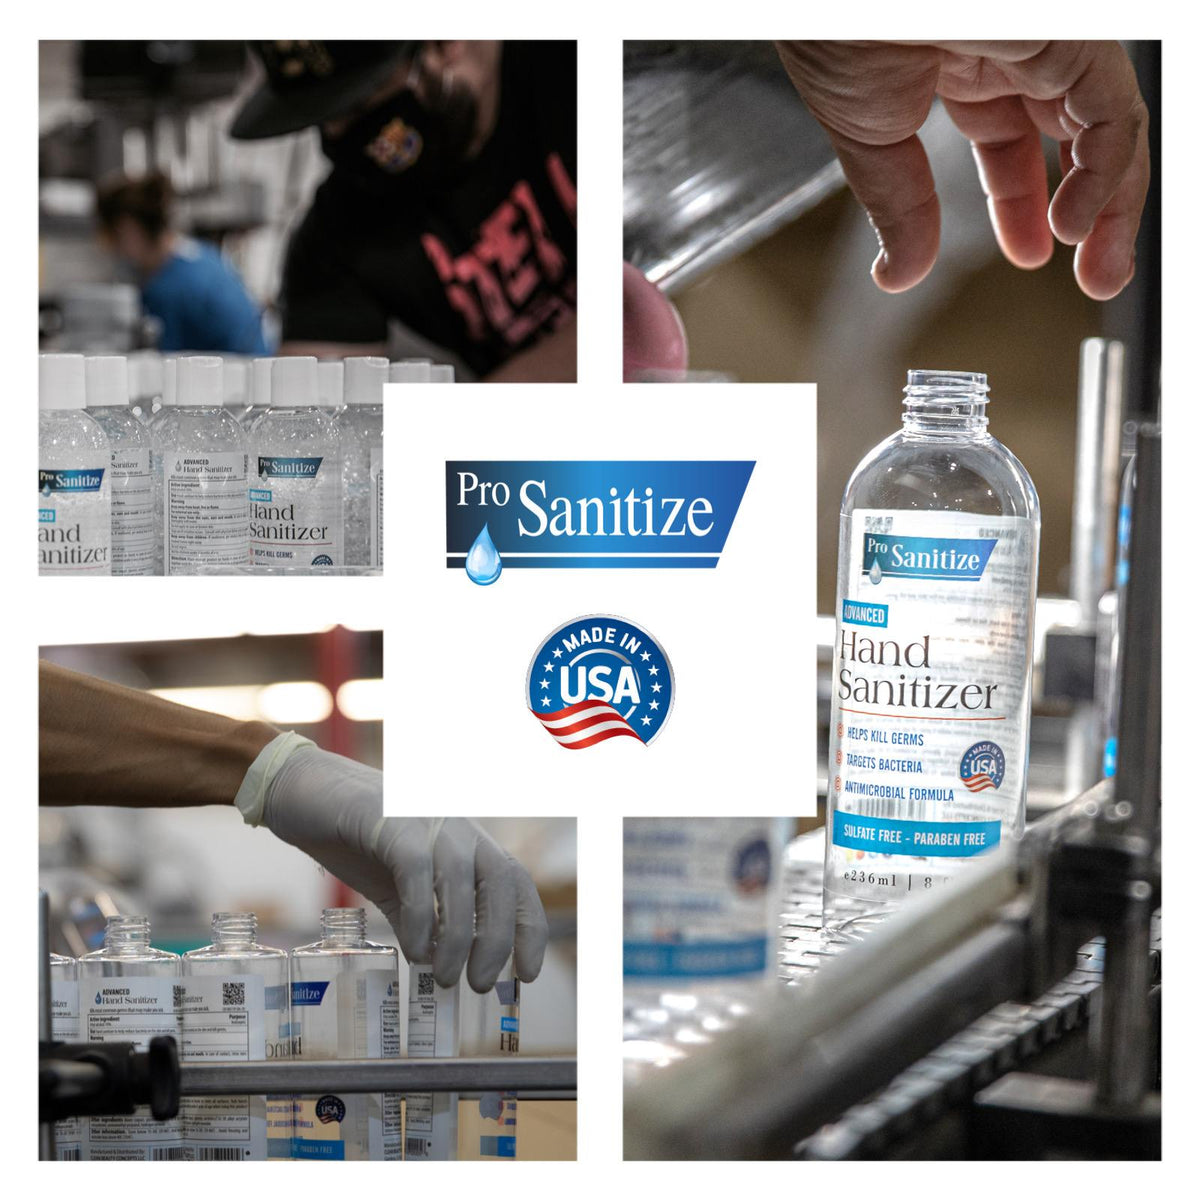 Pro Sanitize Mad in USA